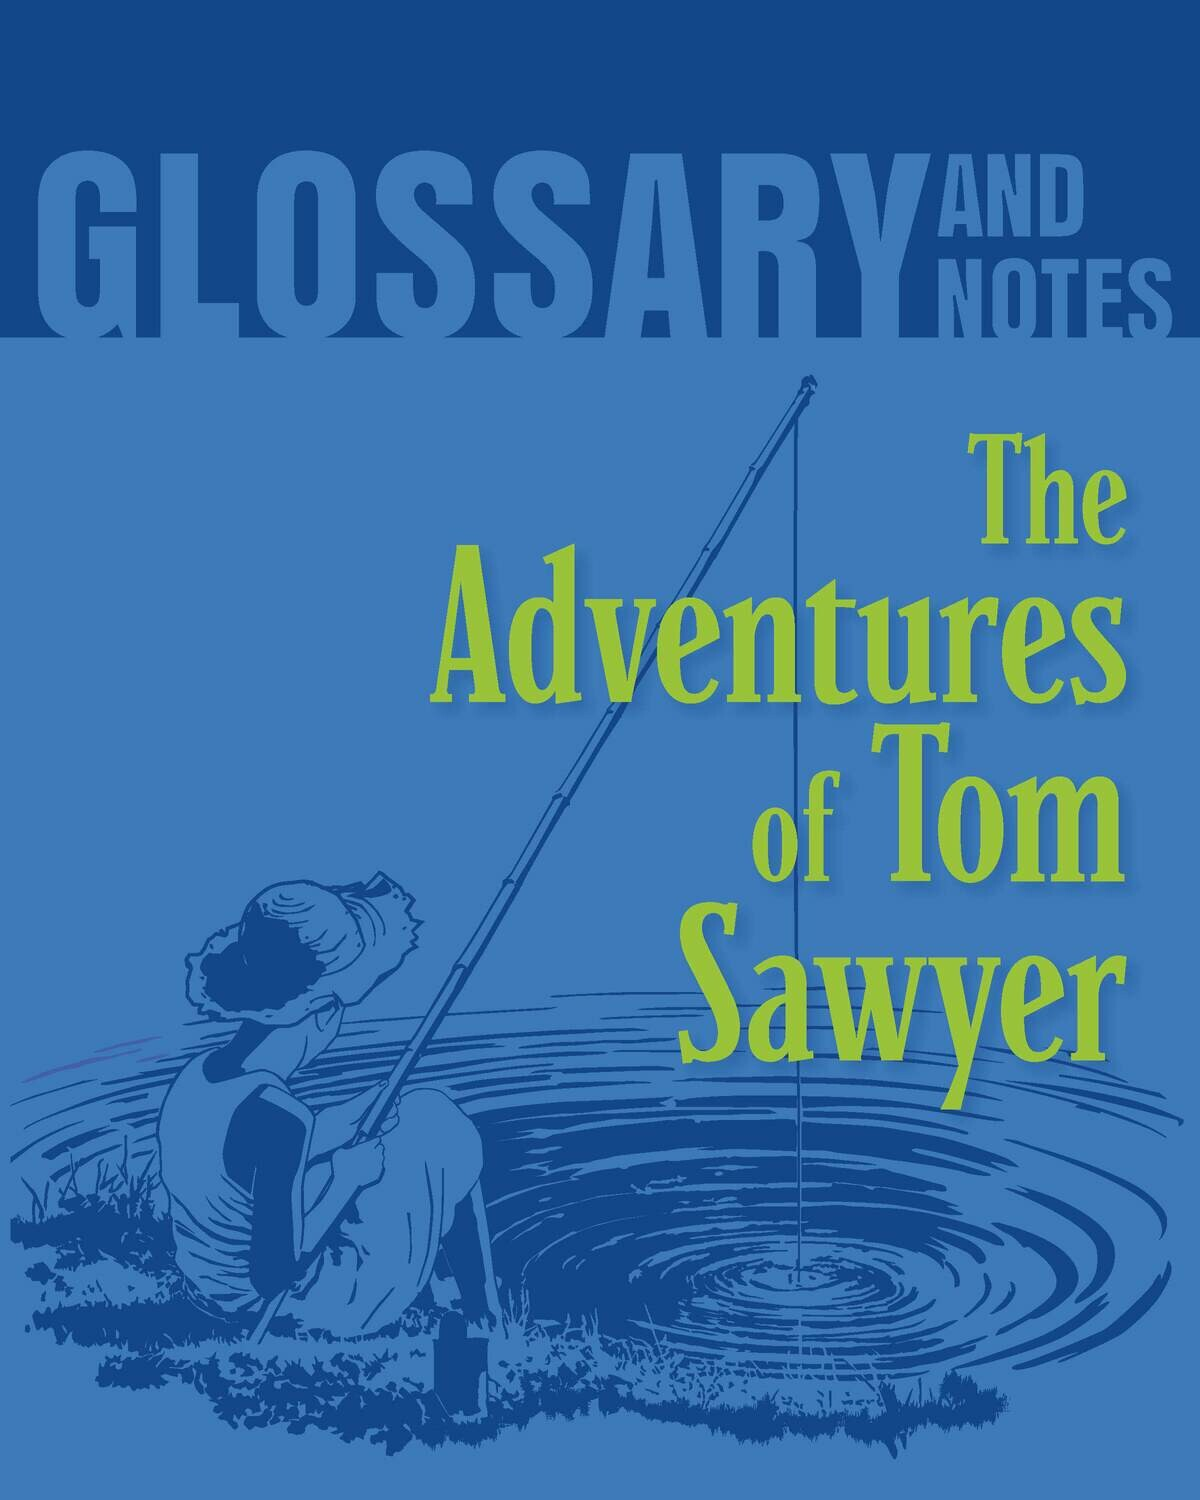 Glossary and Notes - The Adventures of Tom Sawyer